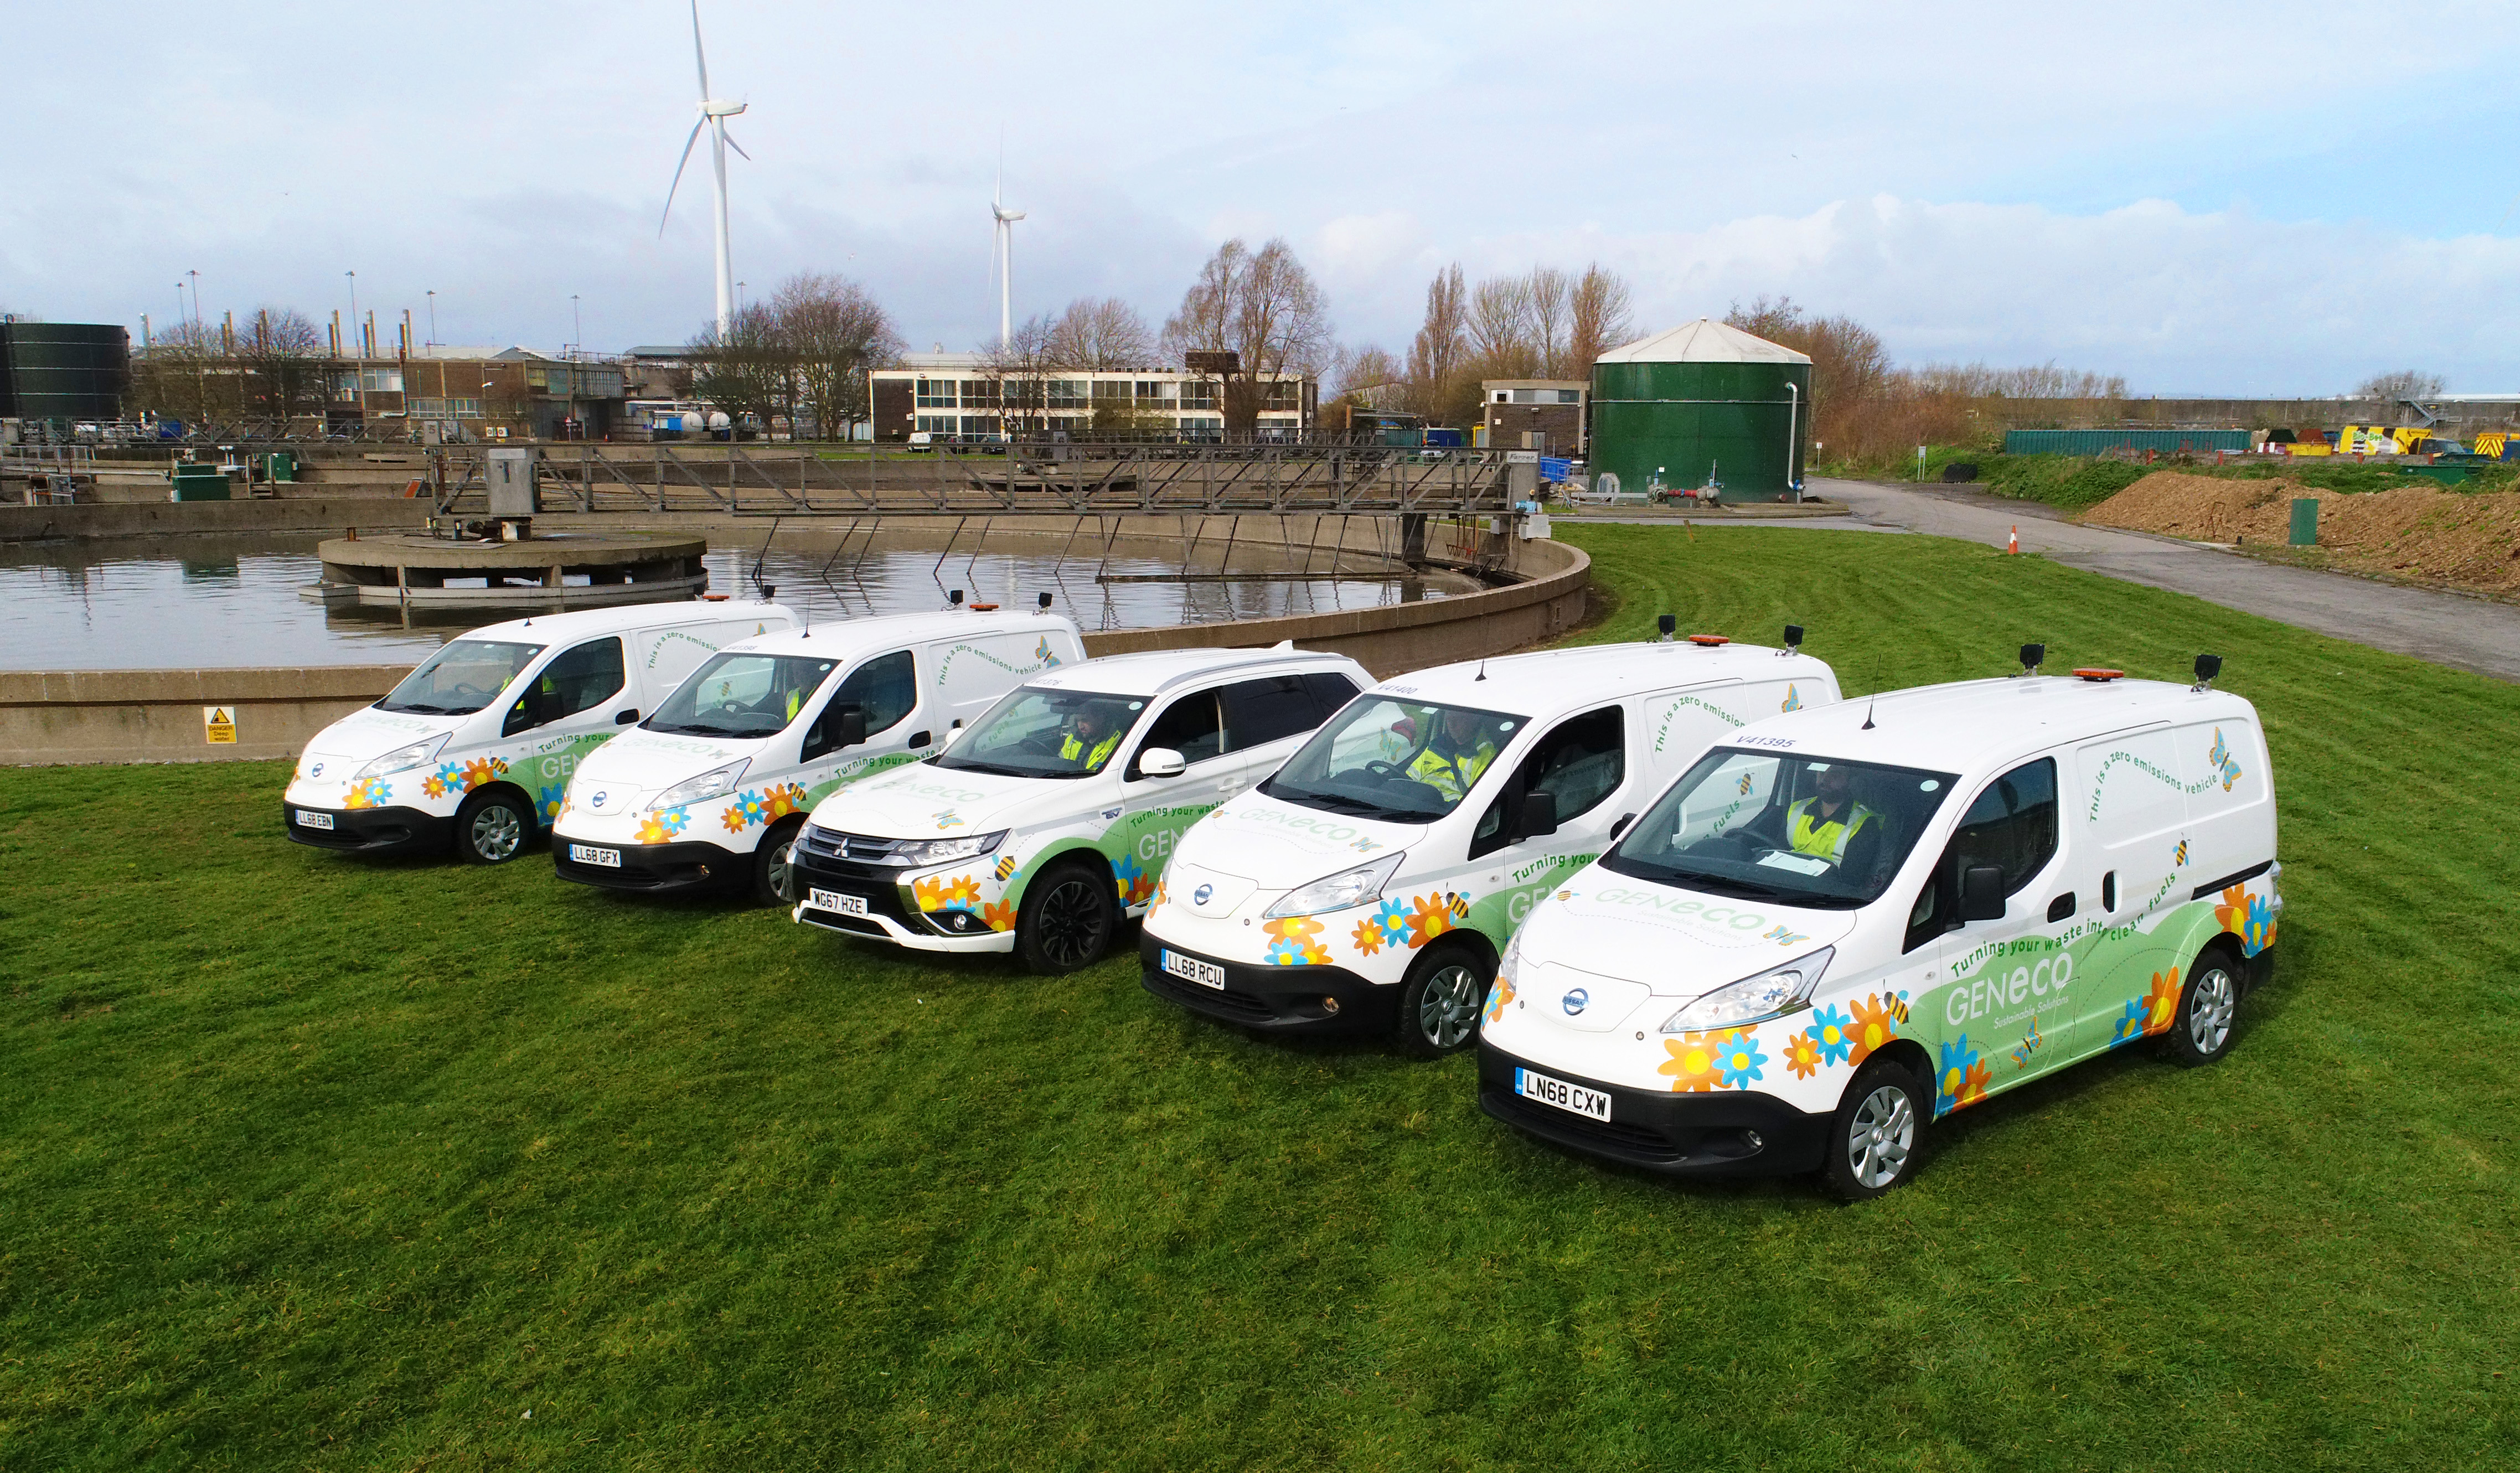 Firm that pioneered poo-powered bus goes electric with trial of clean, green vans